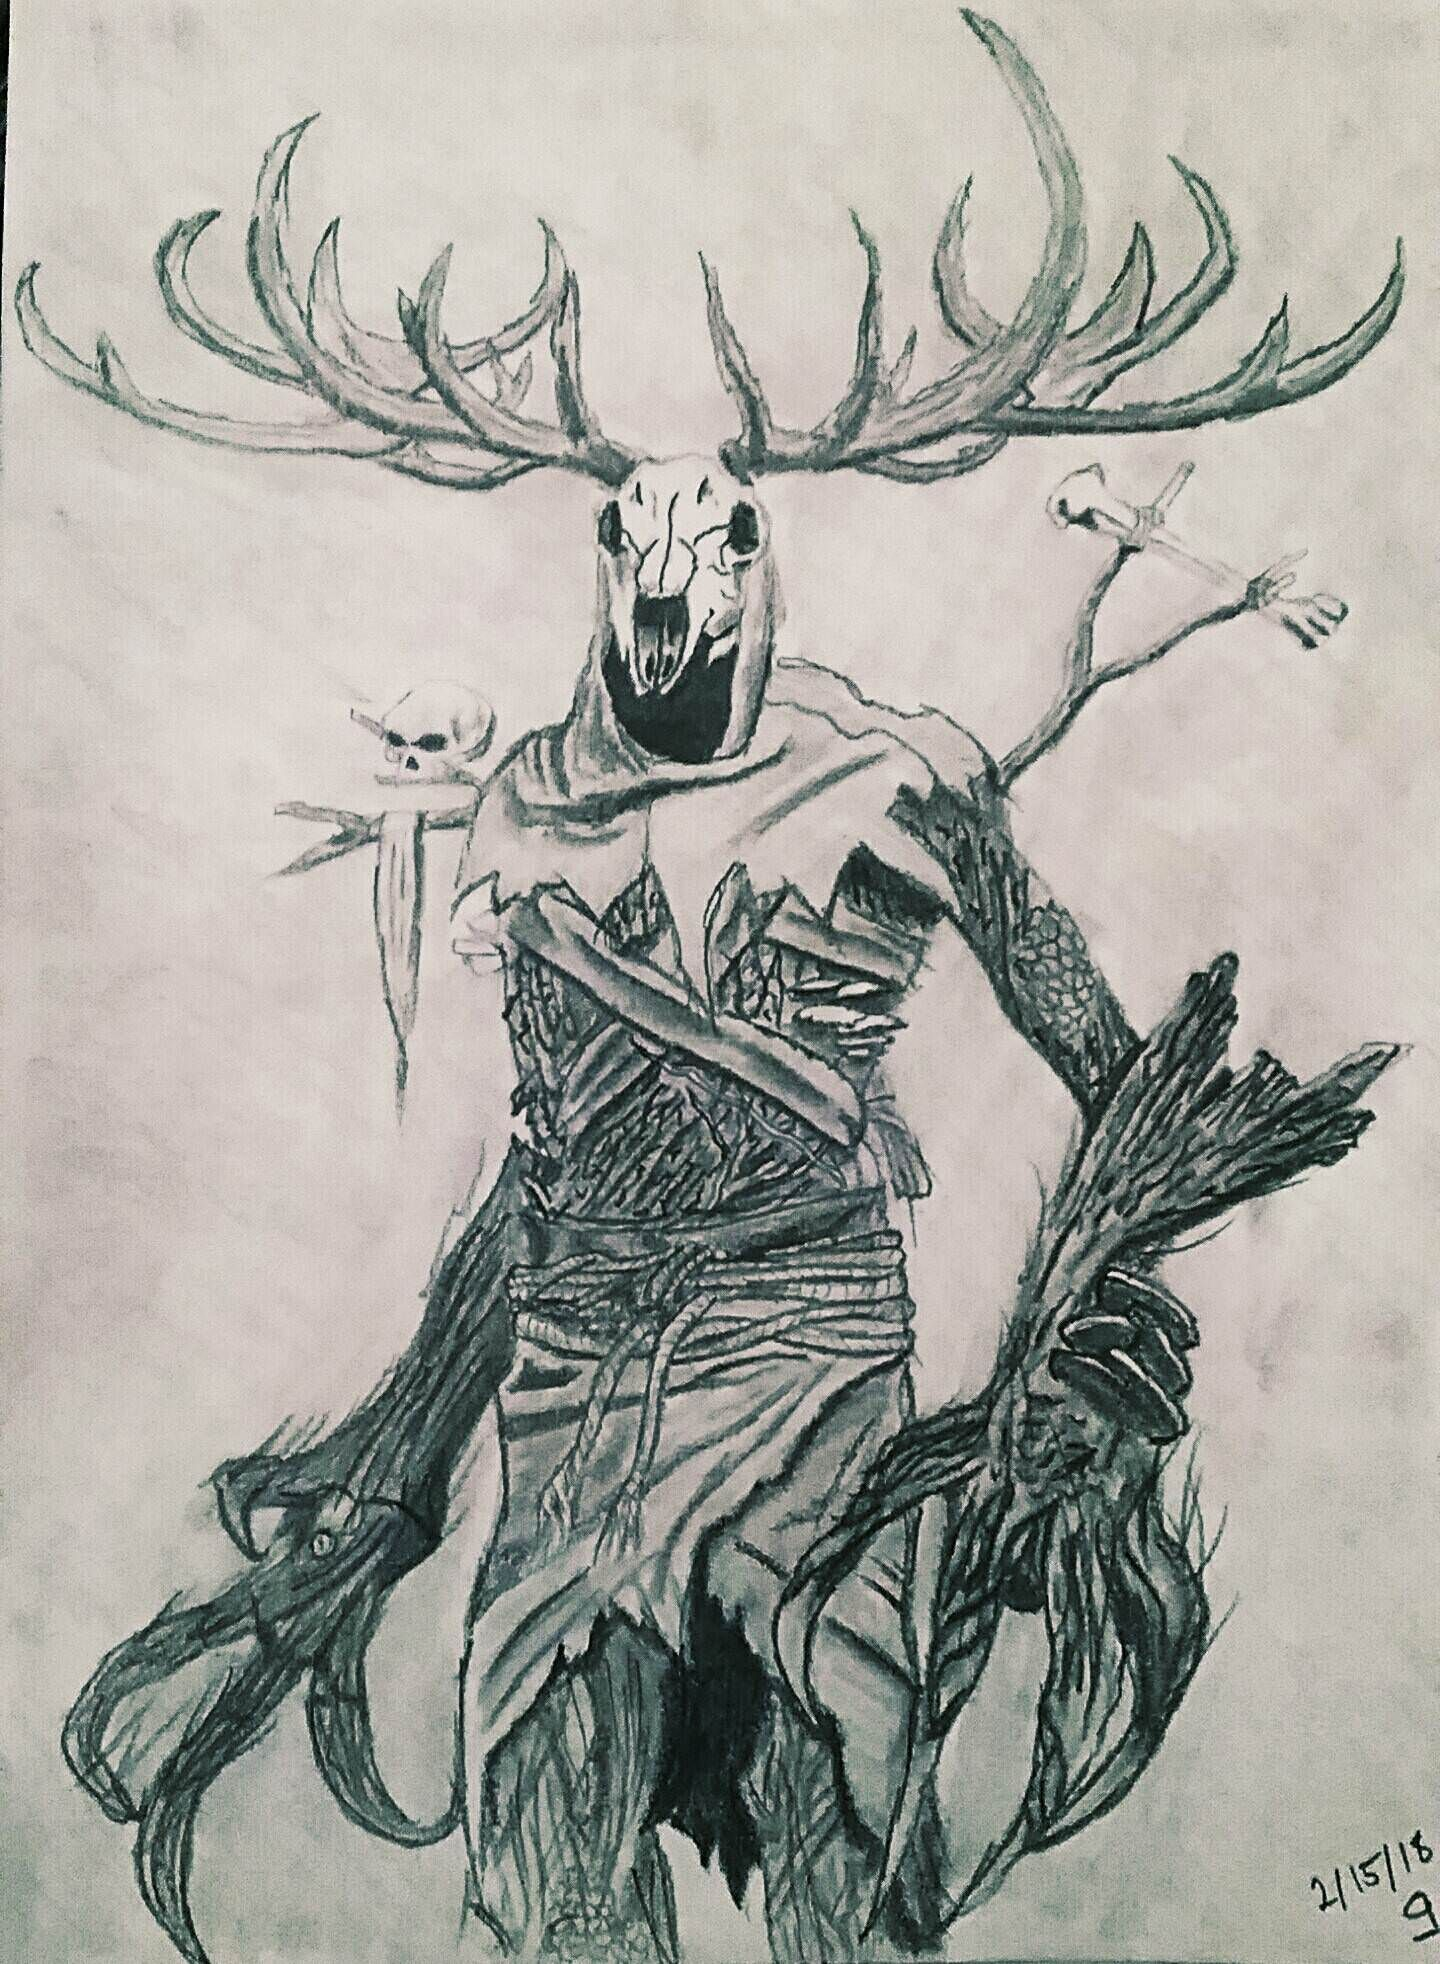 Leshen Guardian Of The Forest Thewitcher3 Ps4 Wildhunt Ps4share Games Gaming Thewitcher Thewitcher3wildhunt Scary Art Wendigo Monsters Sketches